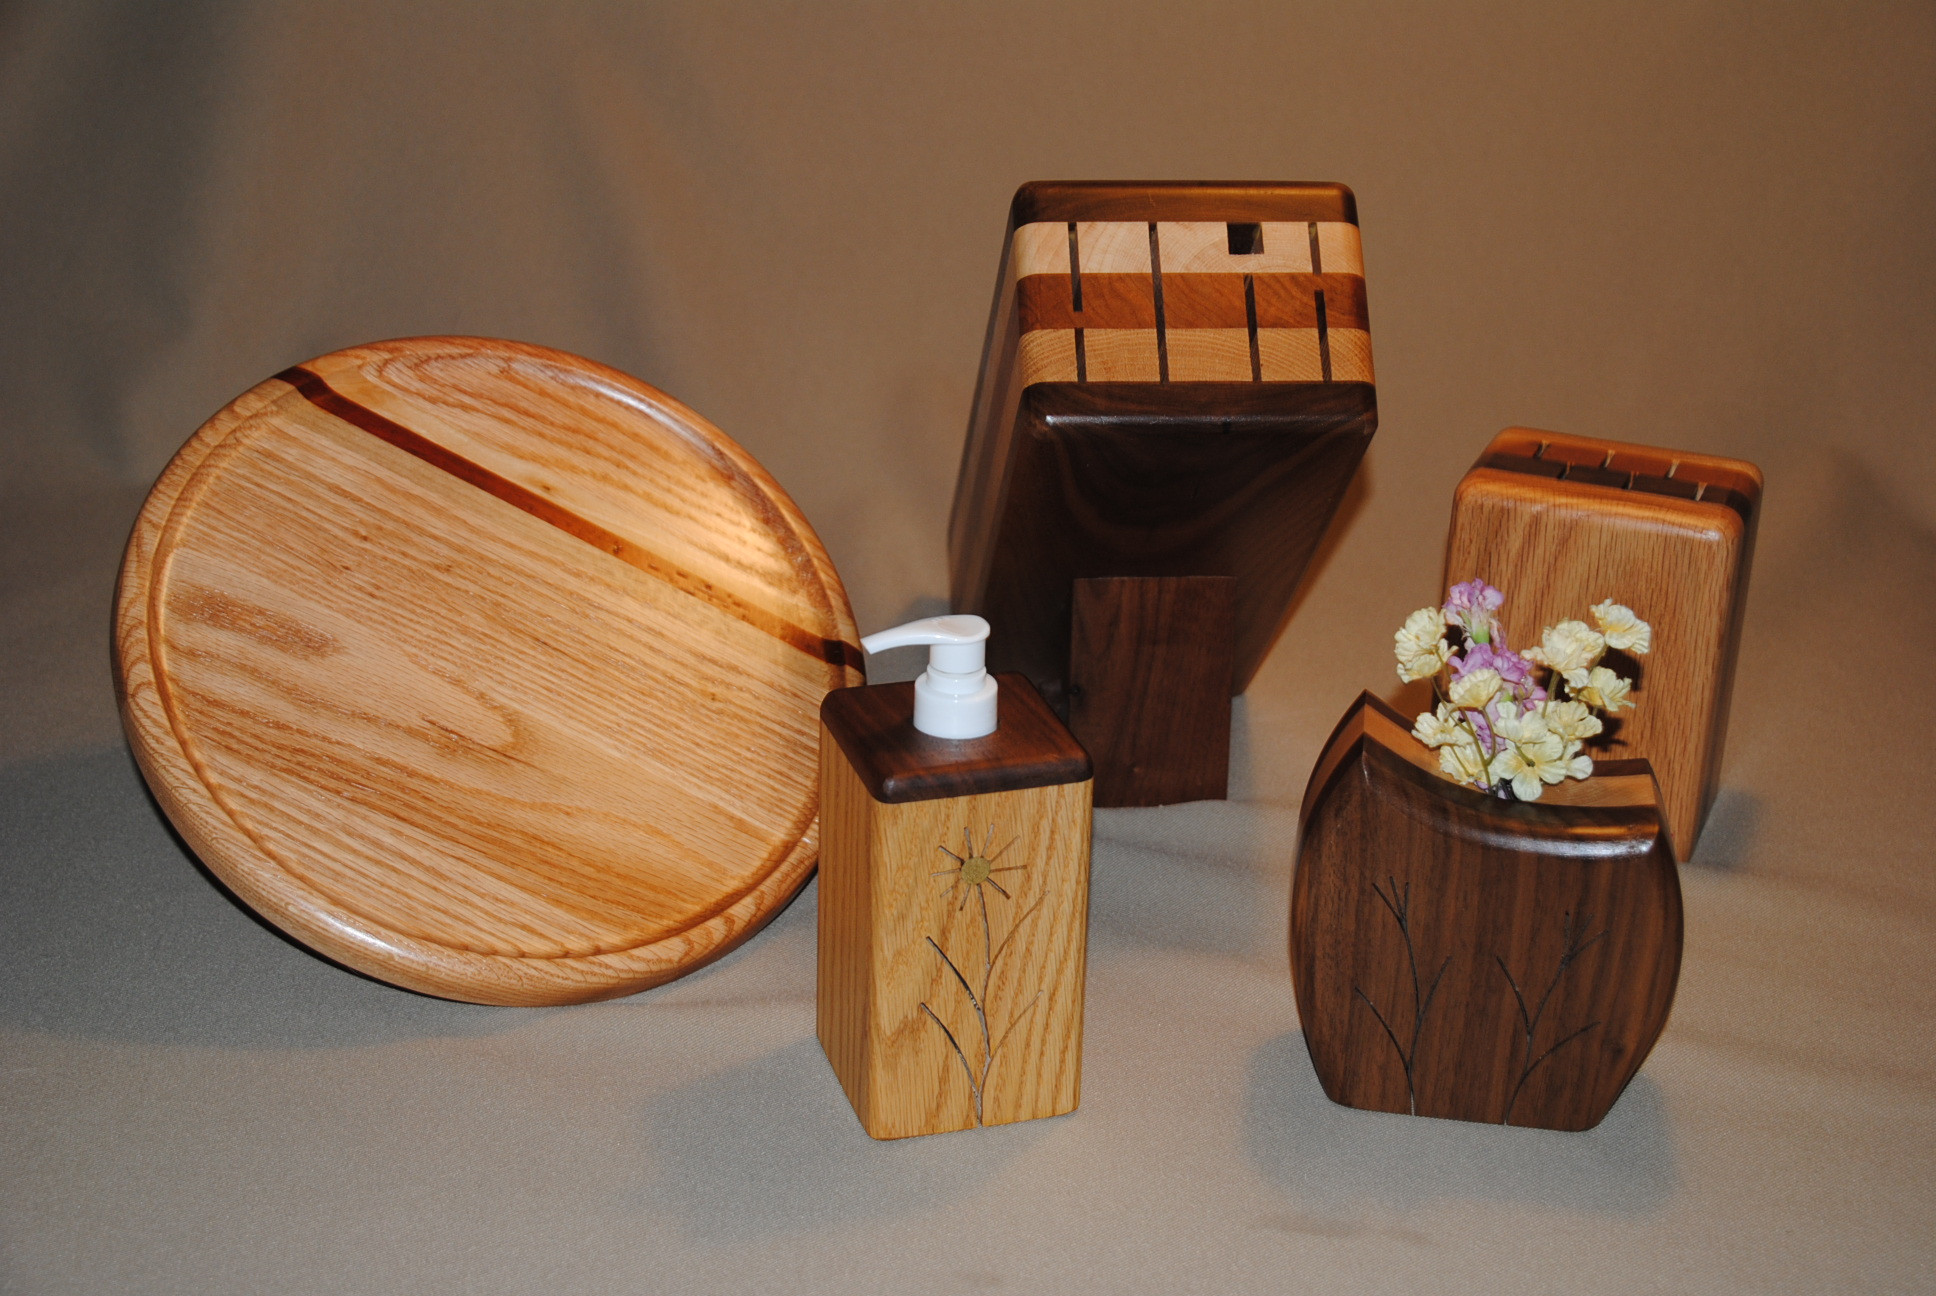 Best ideas about Wooden Gift Ideas . Save or Pin 5 Wooden Gift Ideas to Give on Your 5th Anniversary Now.